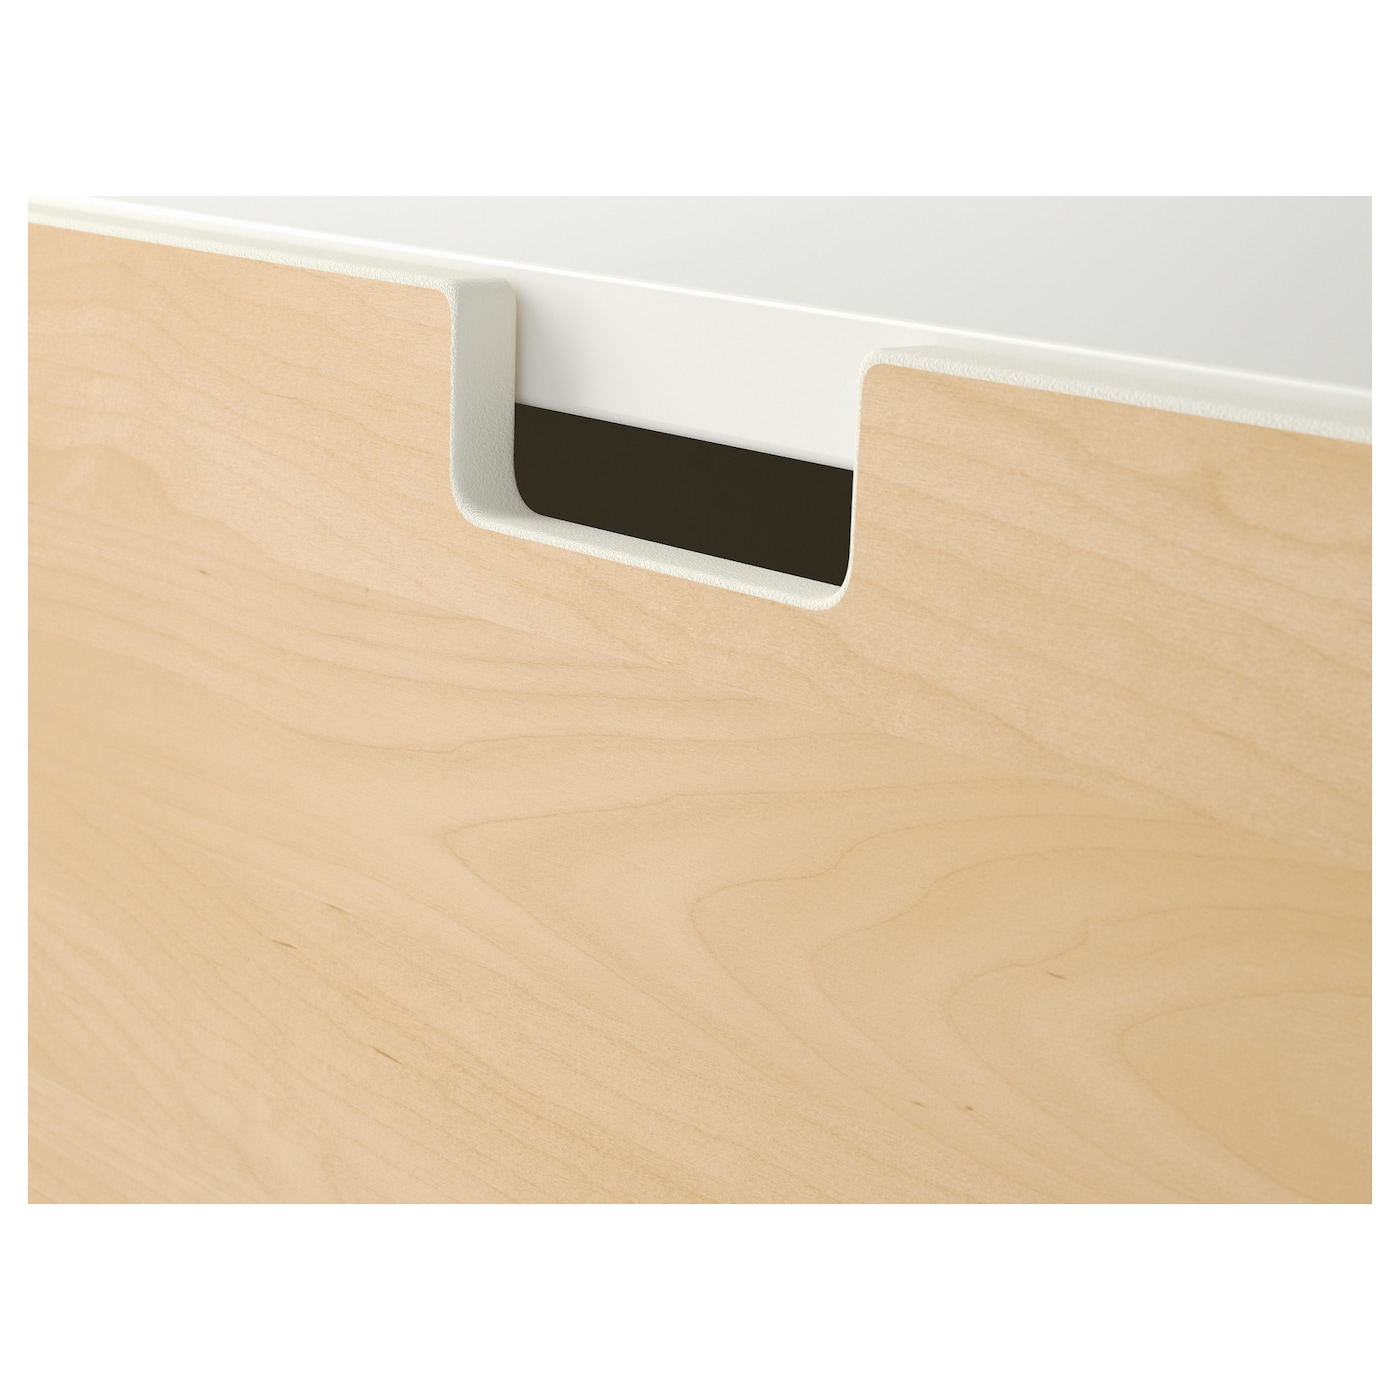 IKEA STUVA chest of 3 drawers Can be used either free-standing or wall-mounted.